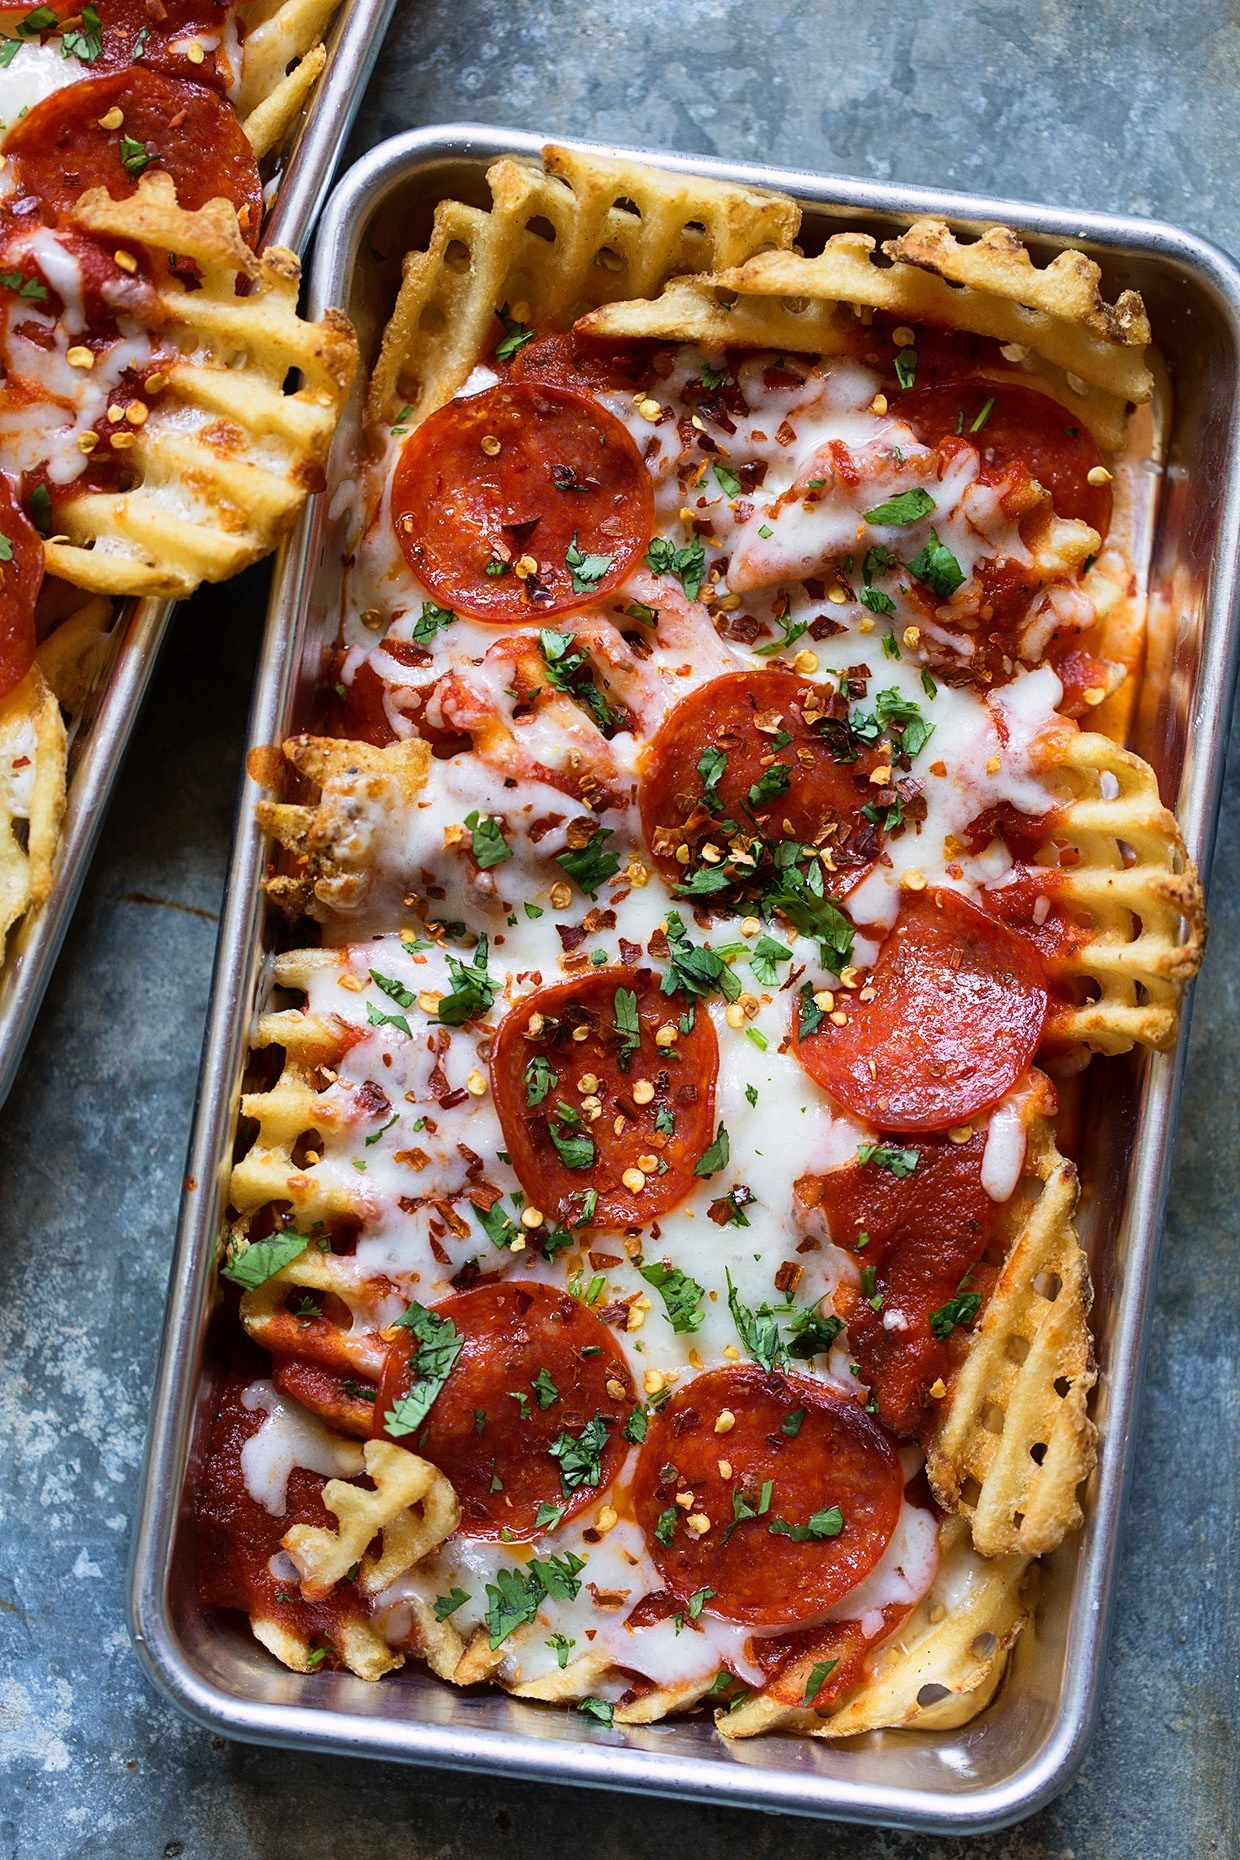 Pizza Waffle Fries Are a Glorious Sight to Behold #deliciousfood